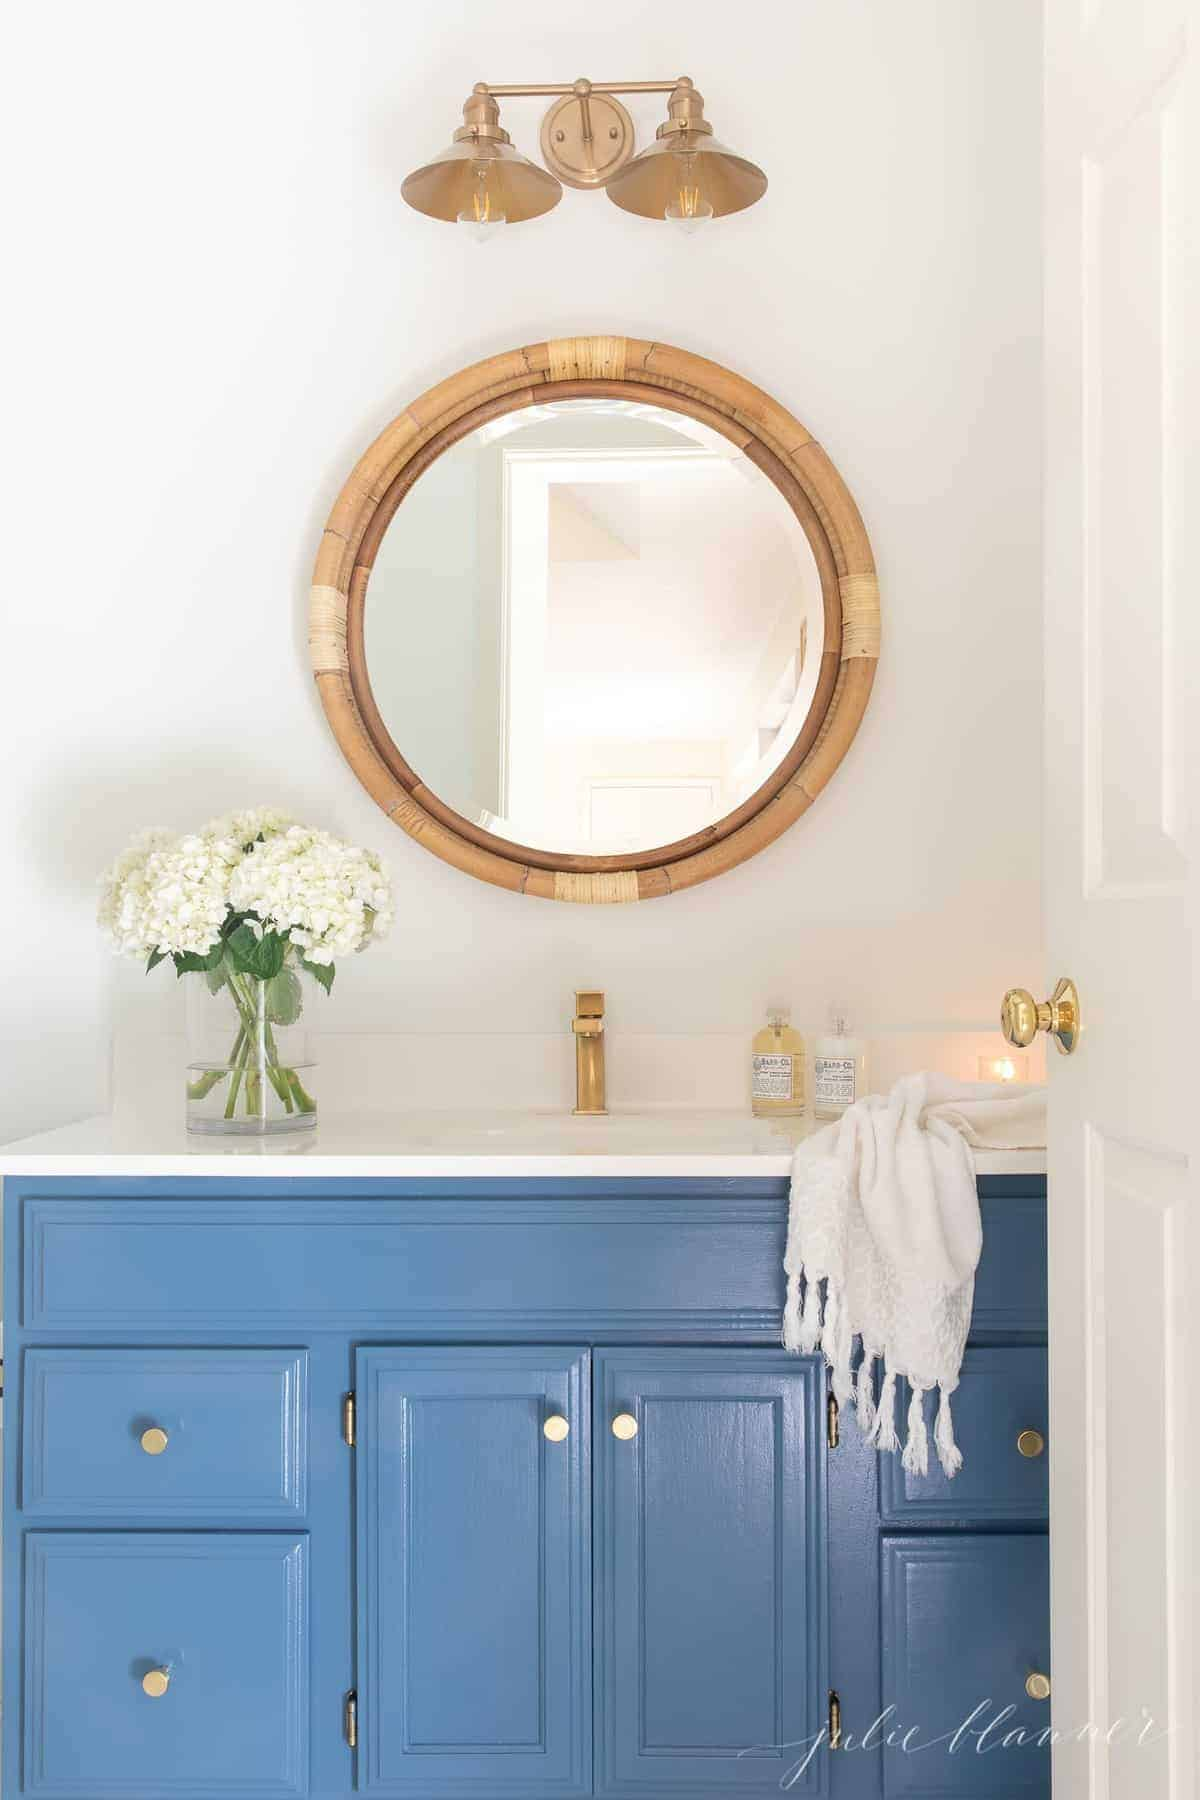 A nautical bathroom with a blue vanity and a round mirror.